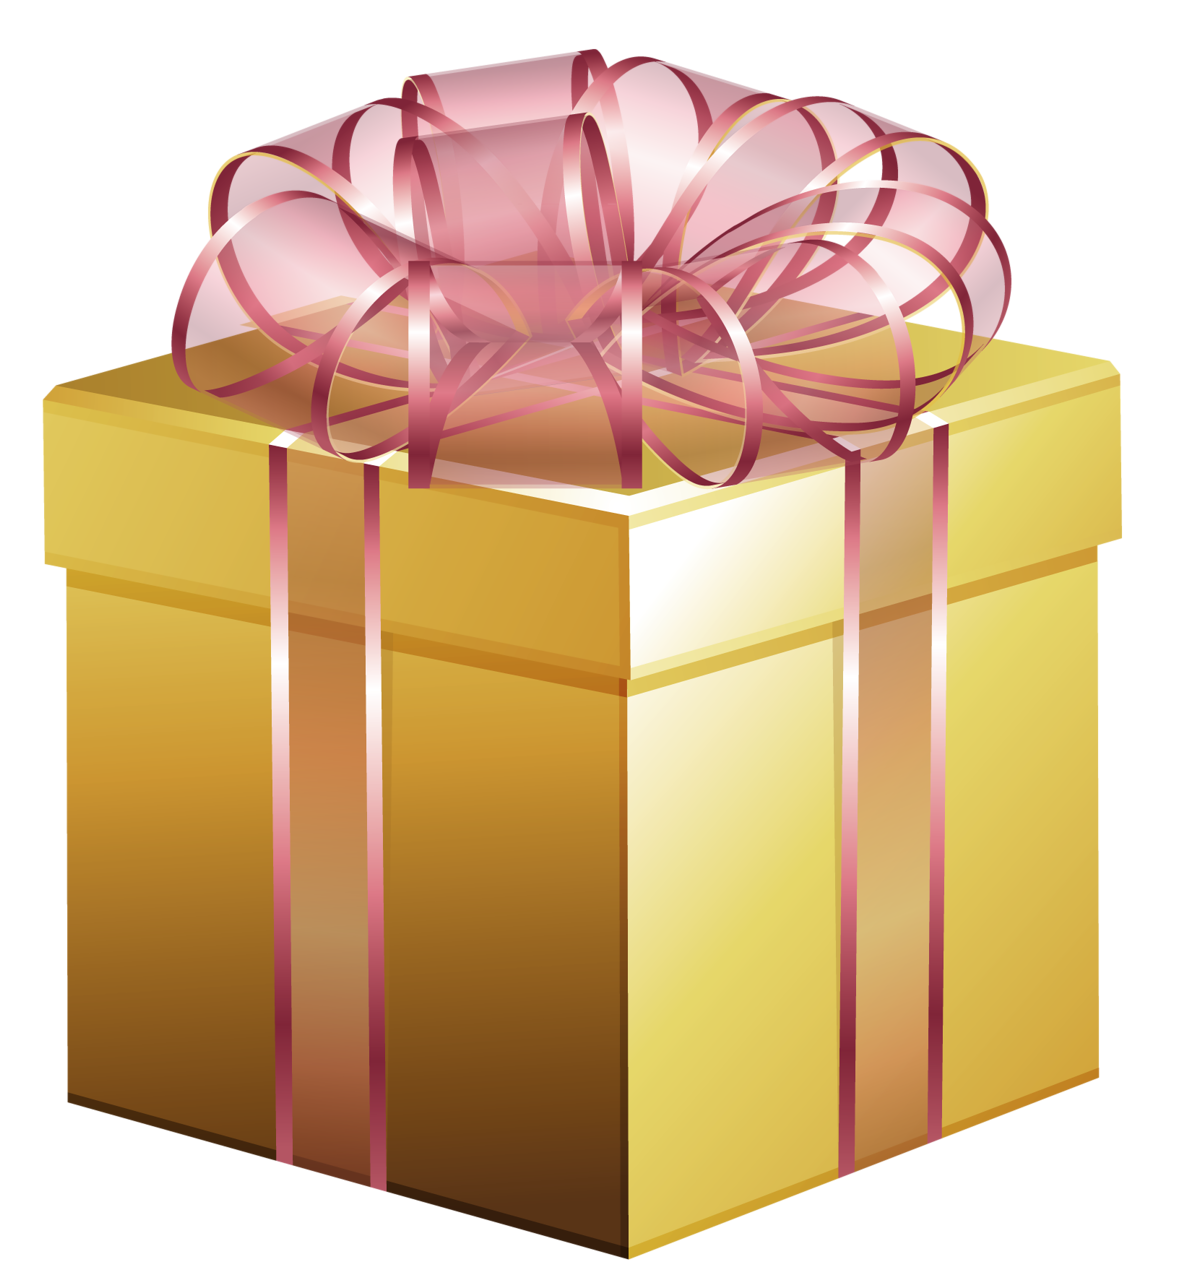 Free download of Gift High Quality PNG